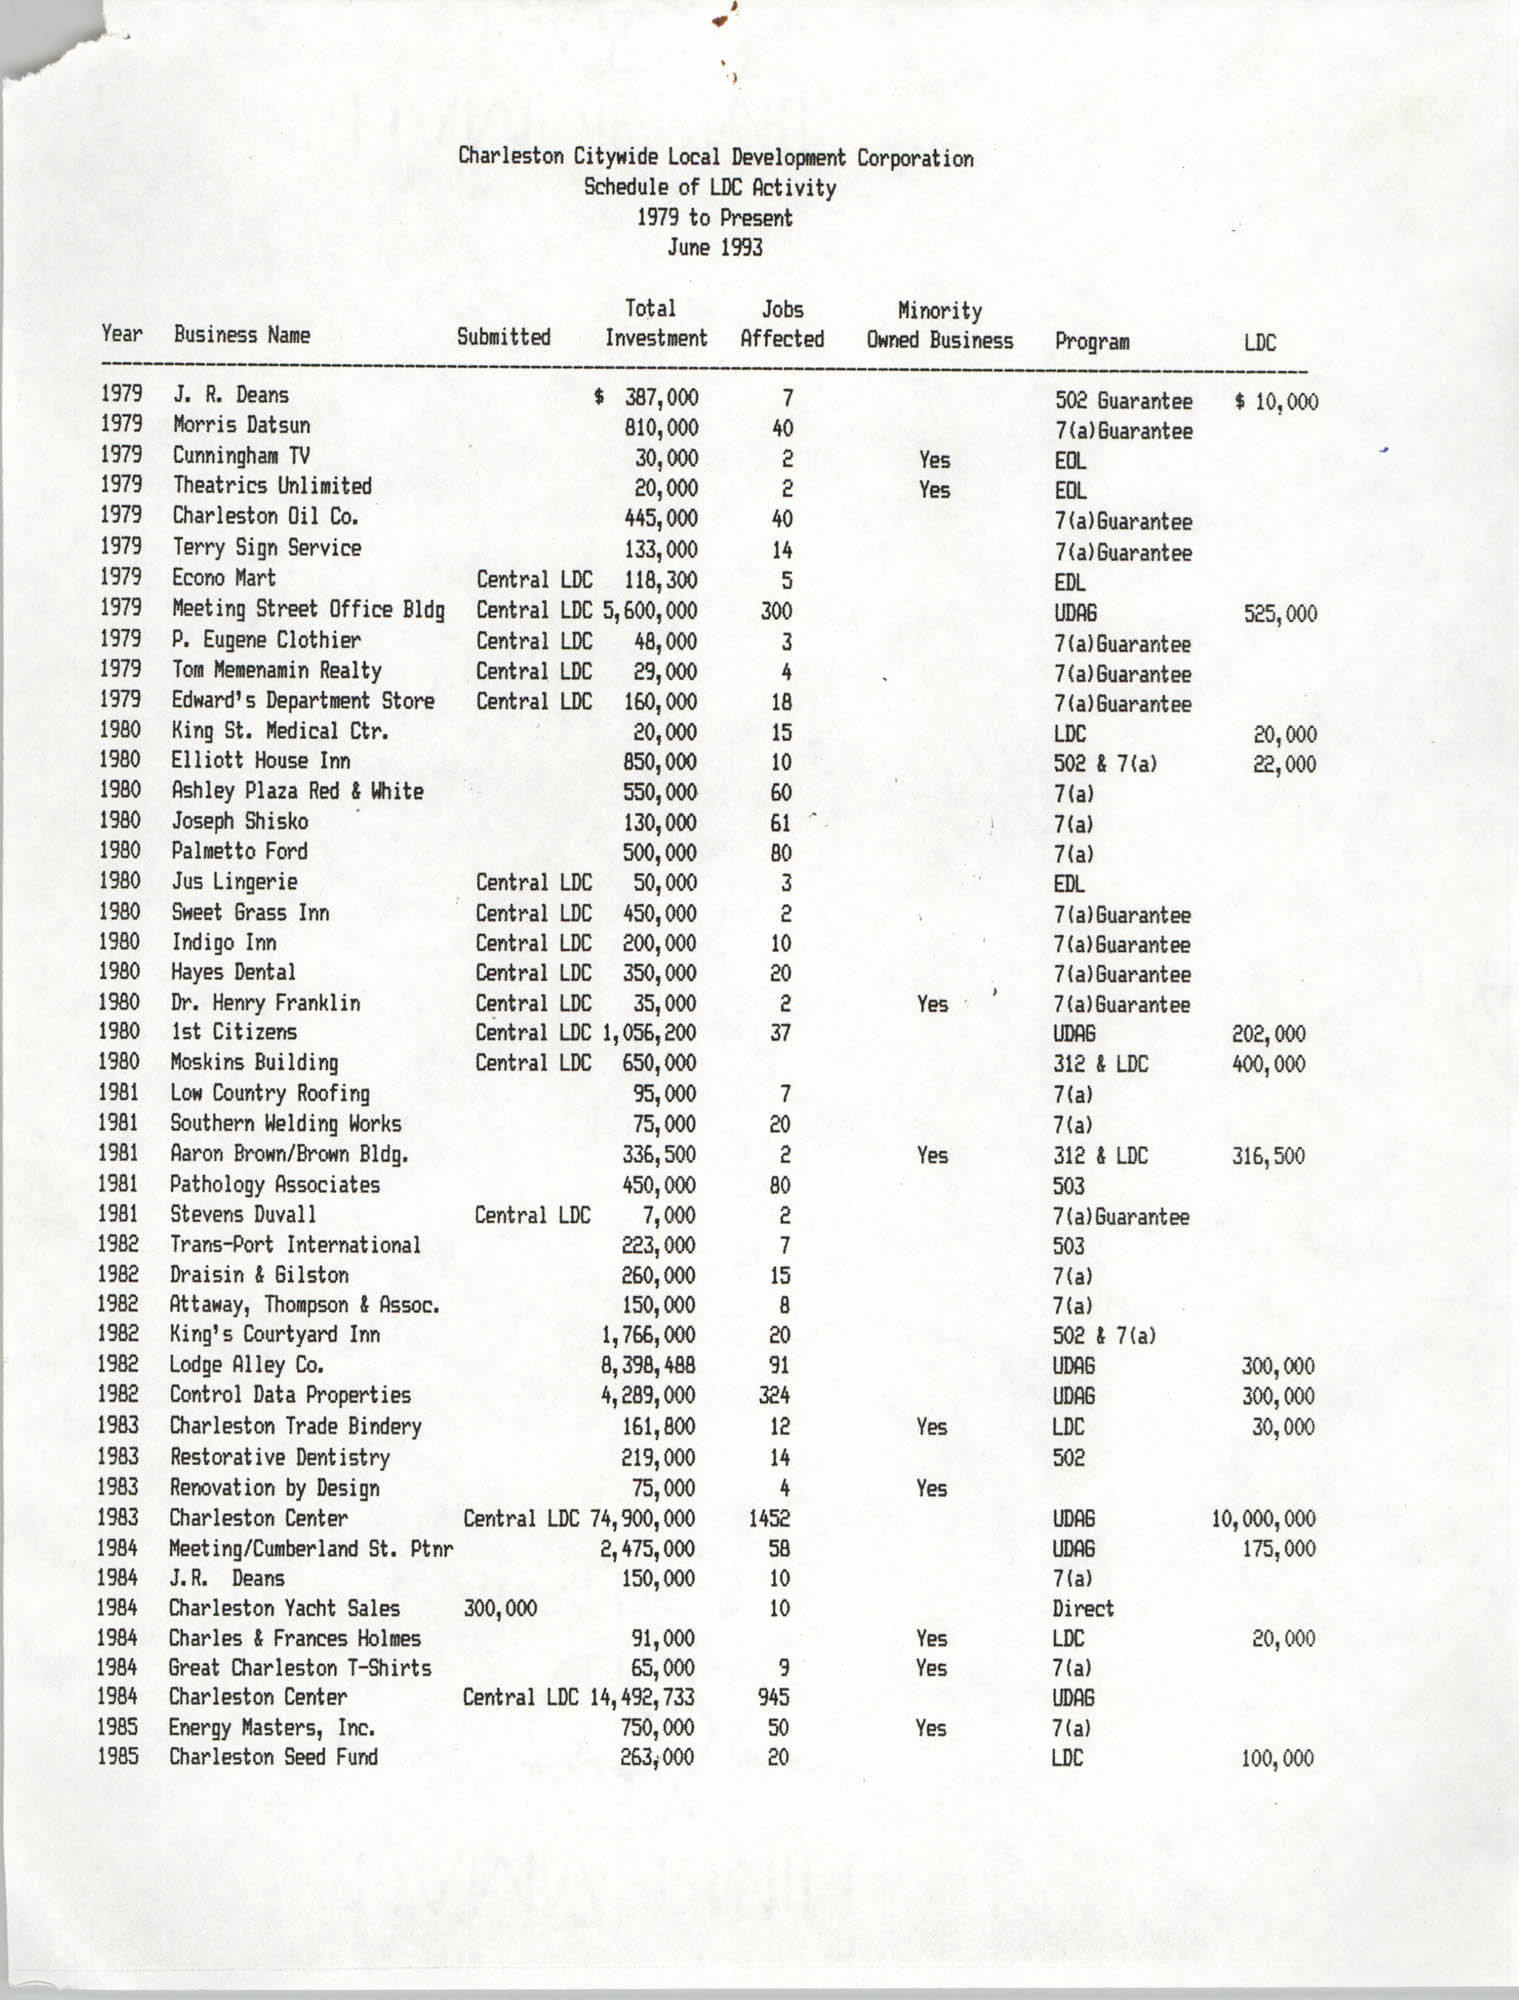 Charleston Citywide Local Development Corporation Charter, Schedule of Activity, Page 1